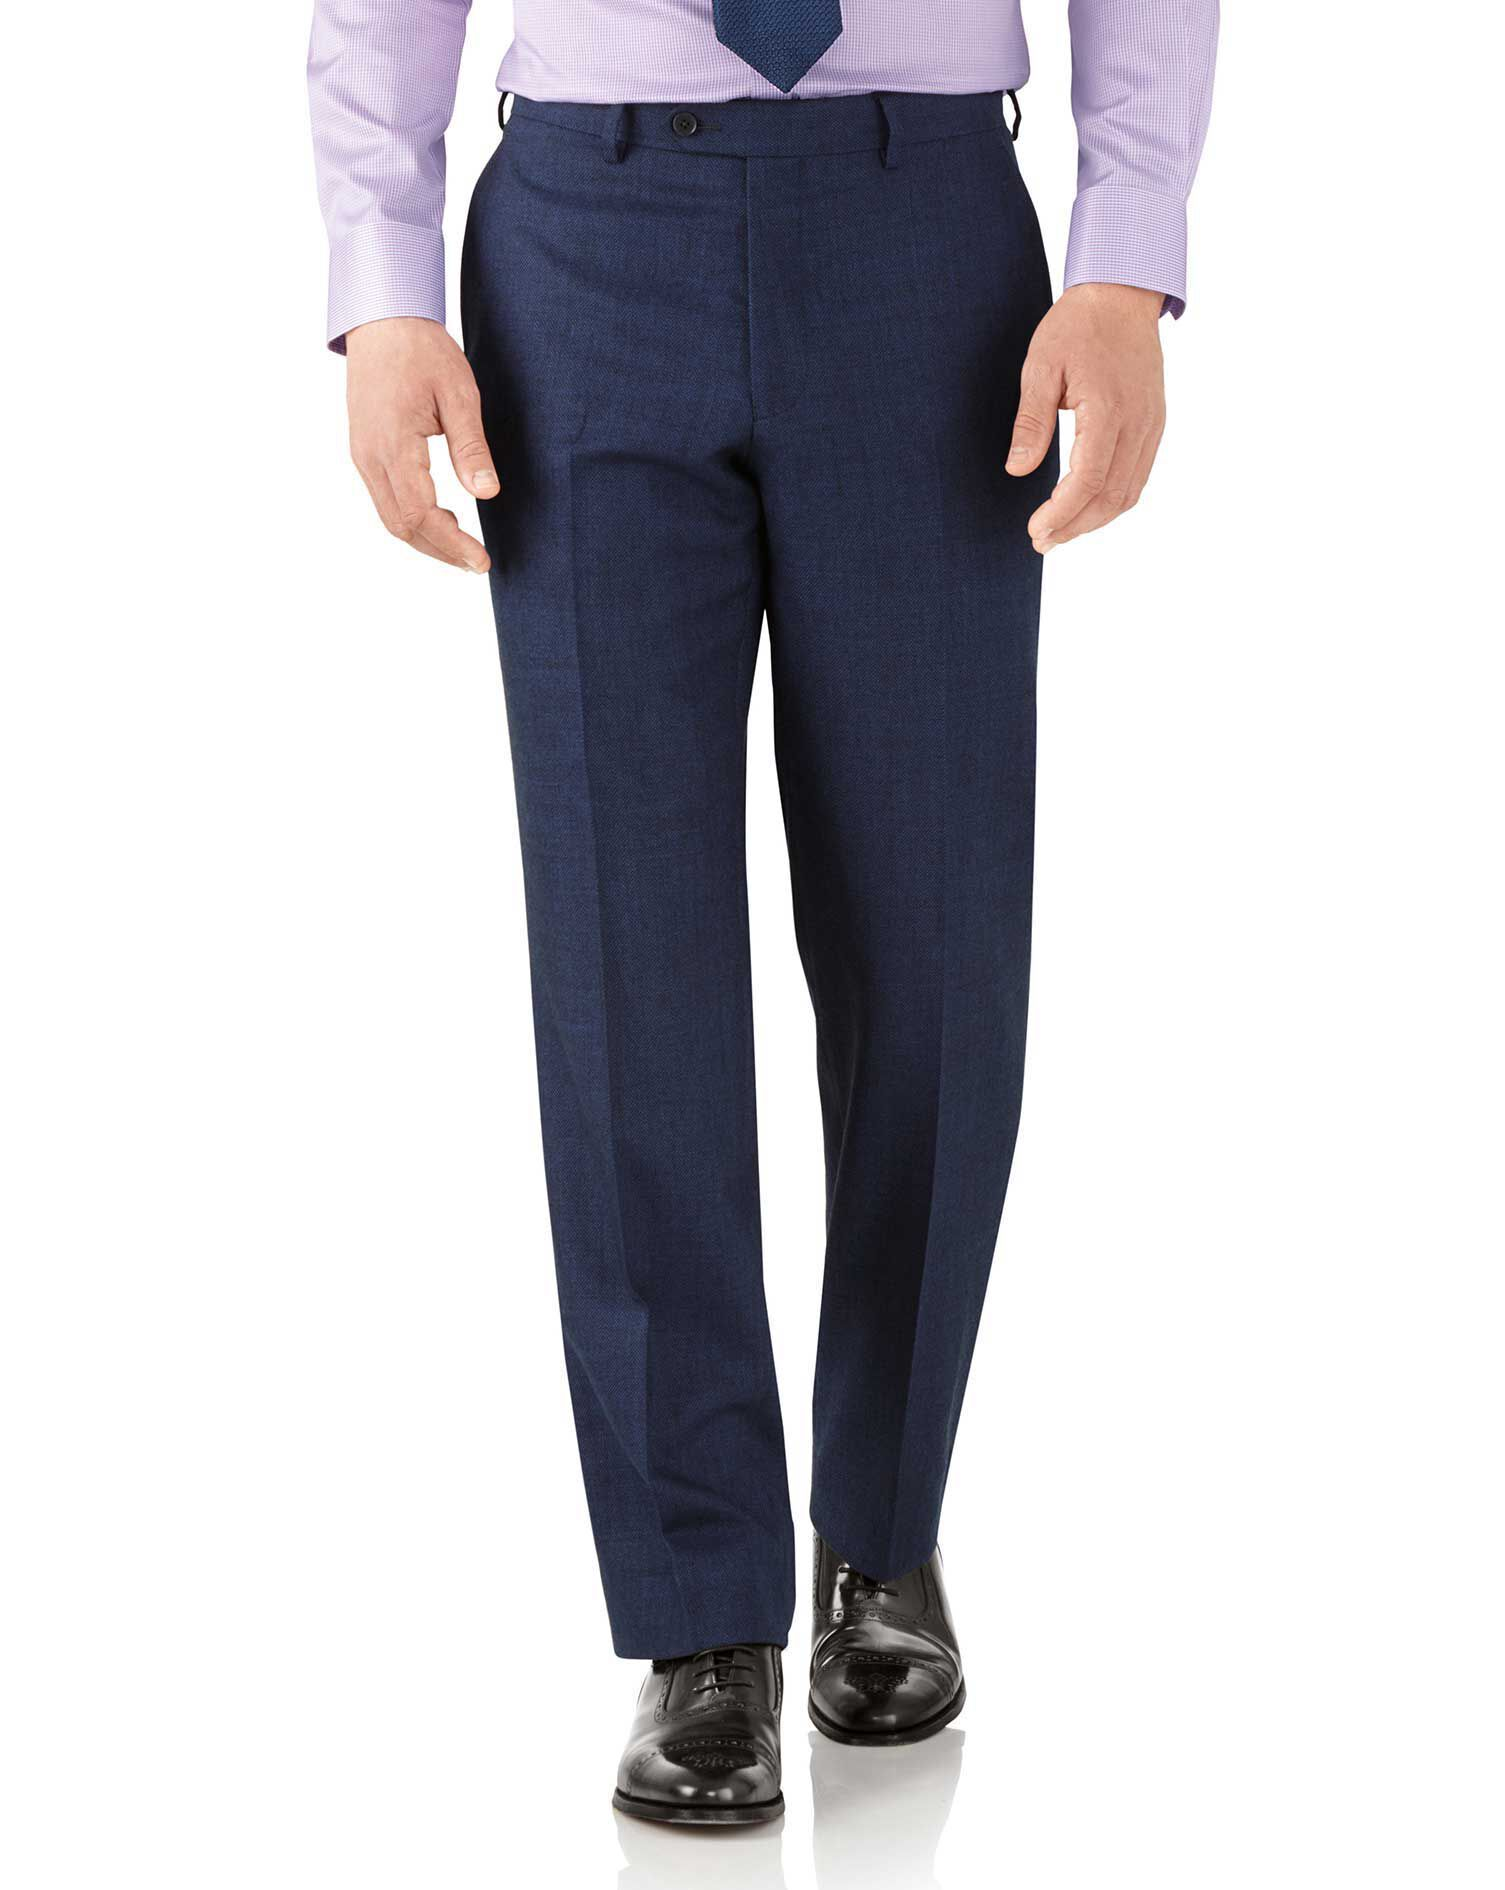 Royal Blue Classic Fit Flannel Business Suit Trousers Size W34 L32 by Charles Tyrwhitt